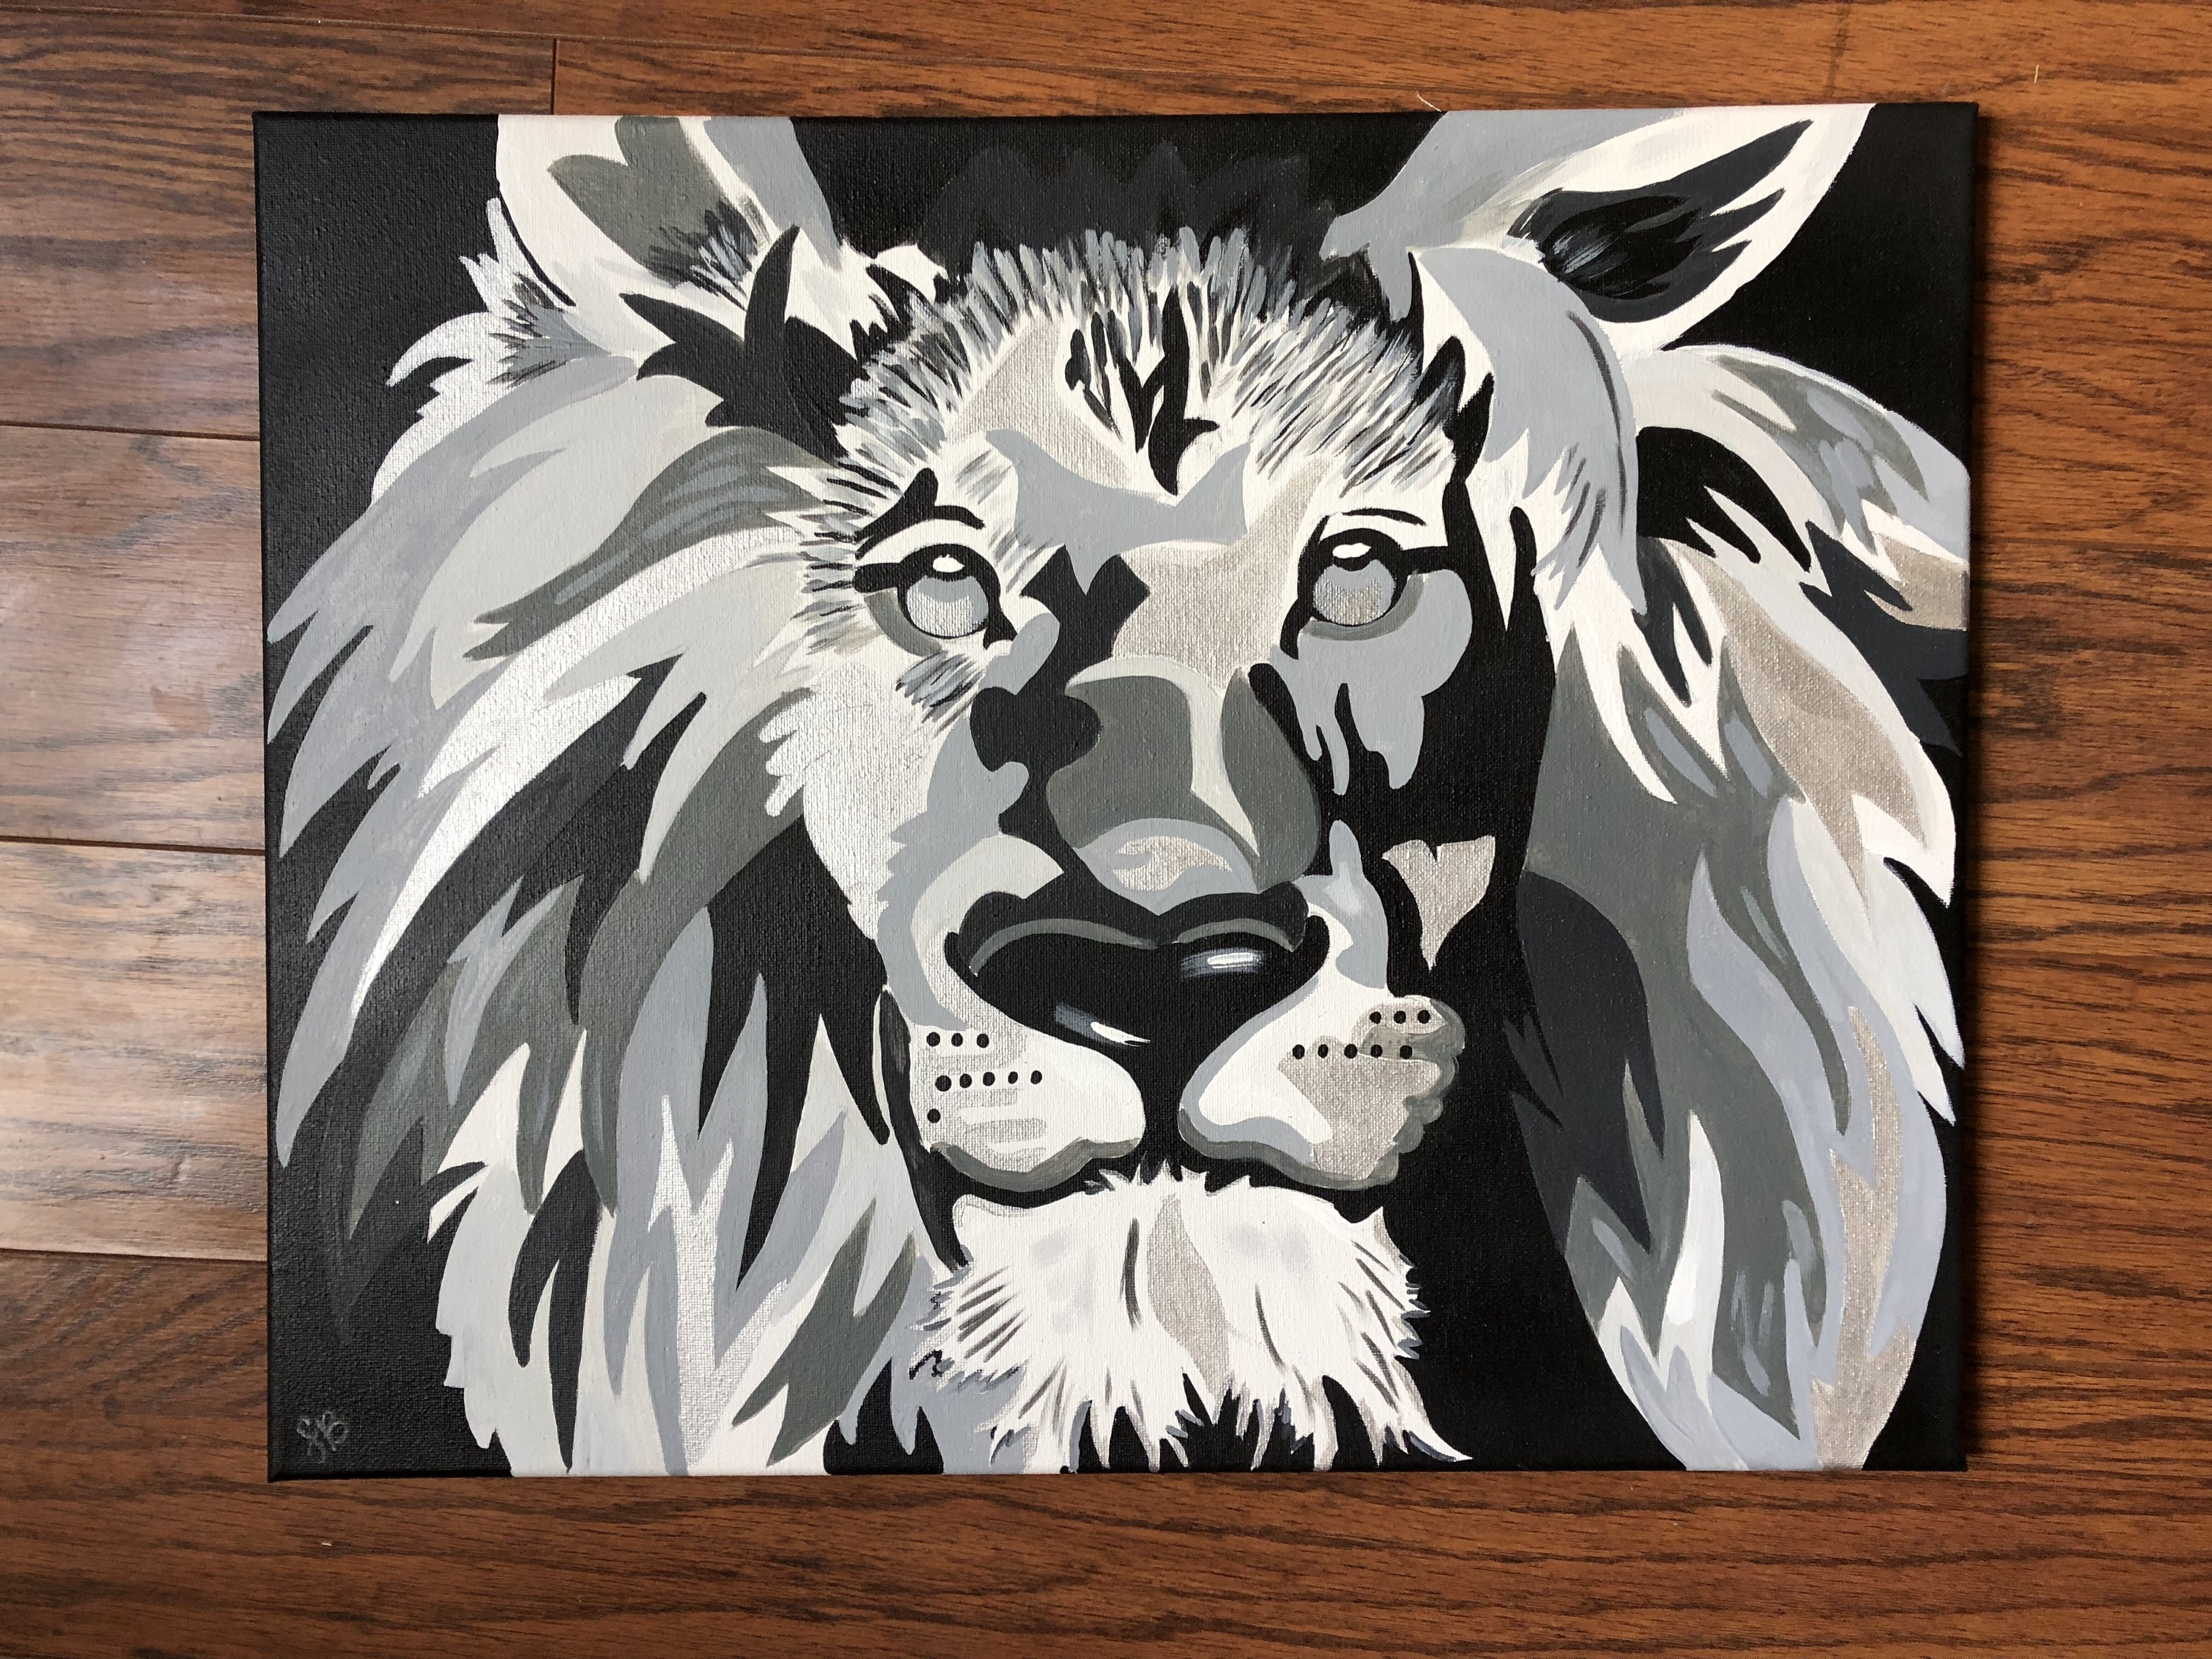 Black and white lion portrait acrylic painting on a 16x20 inch canvas